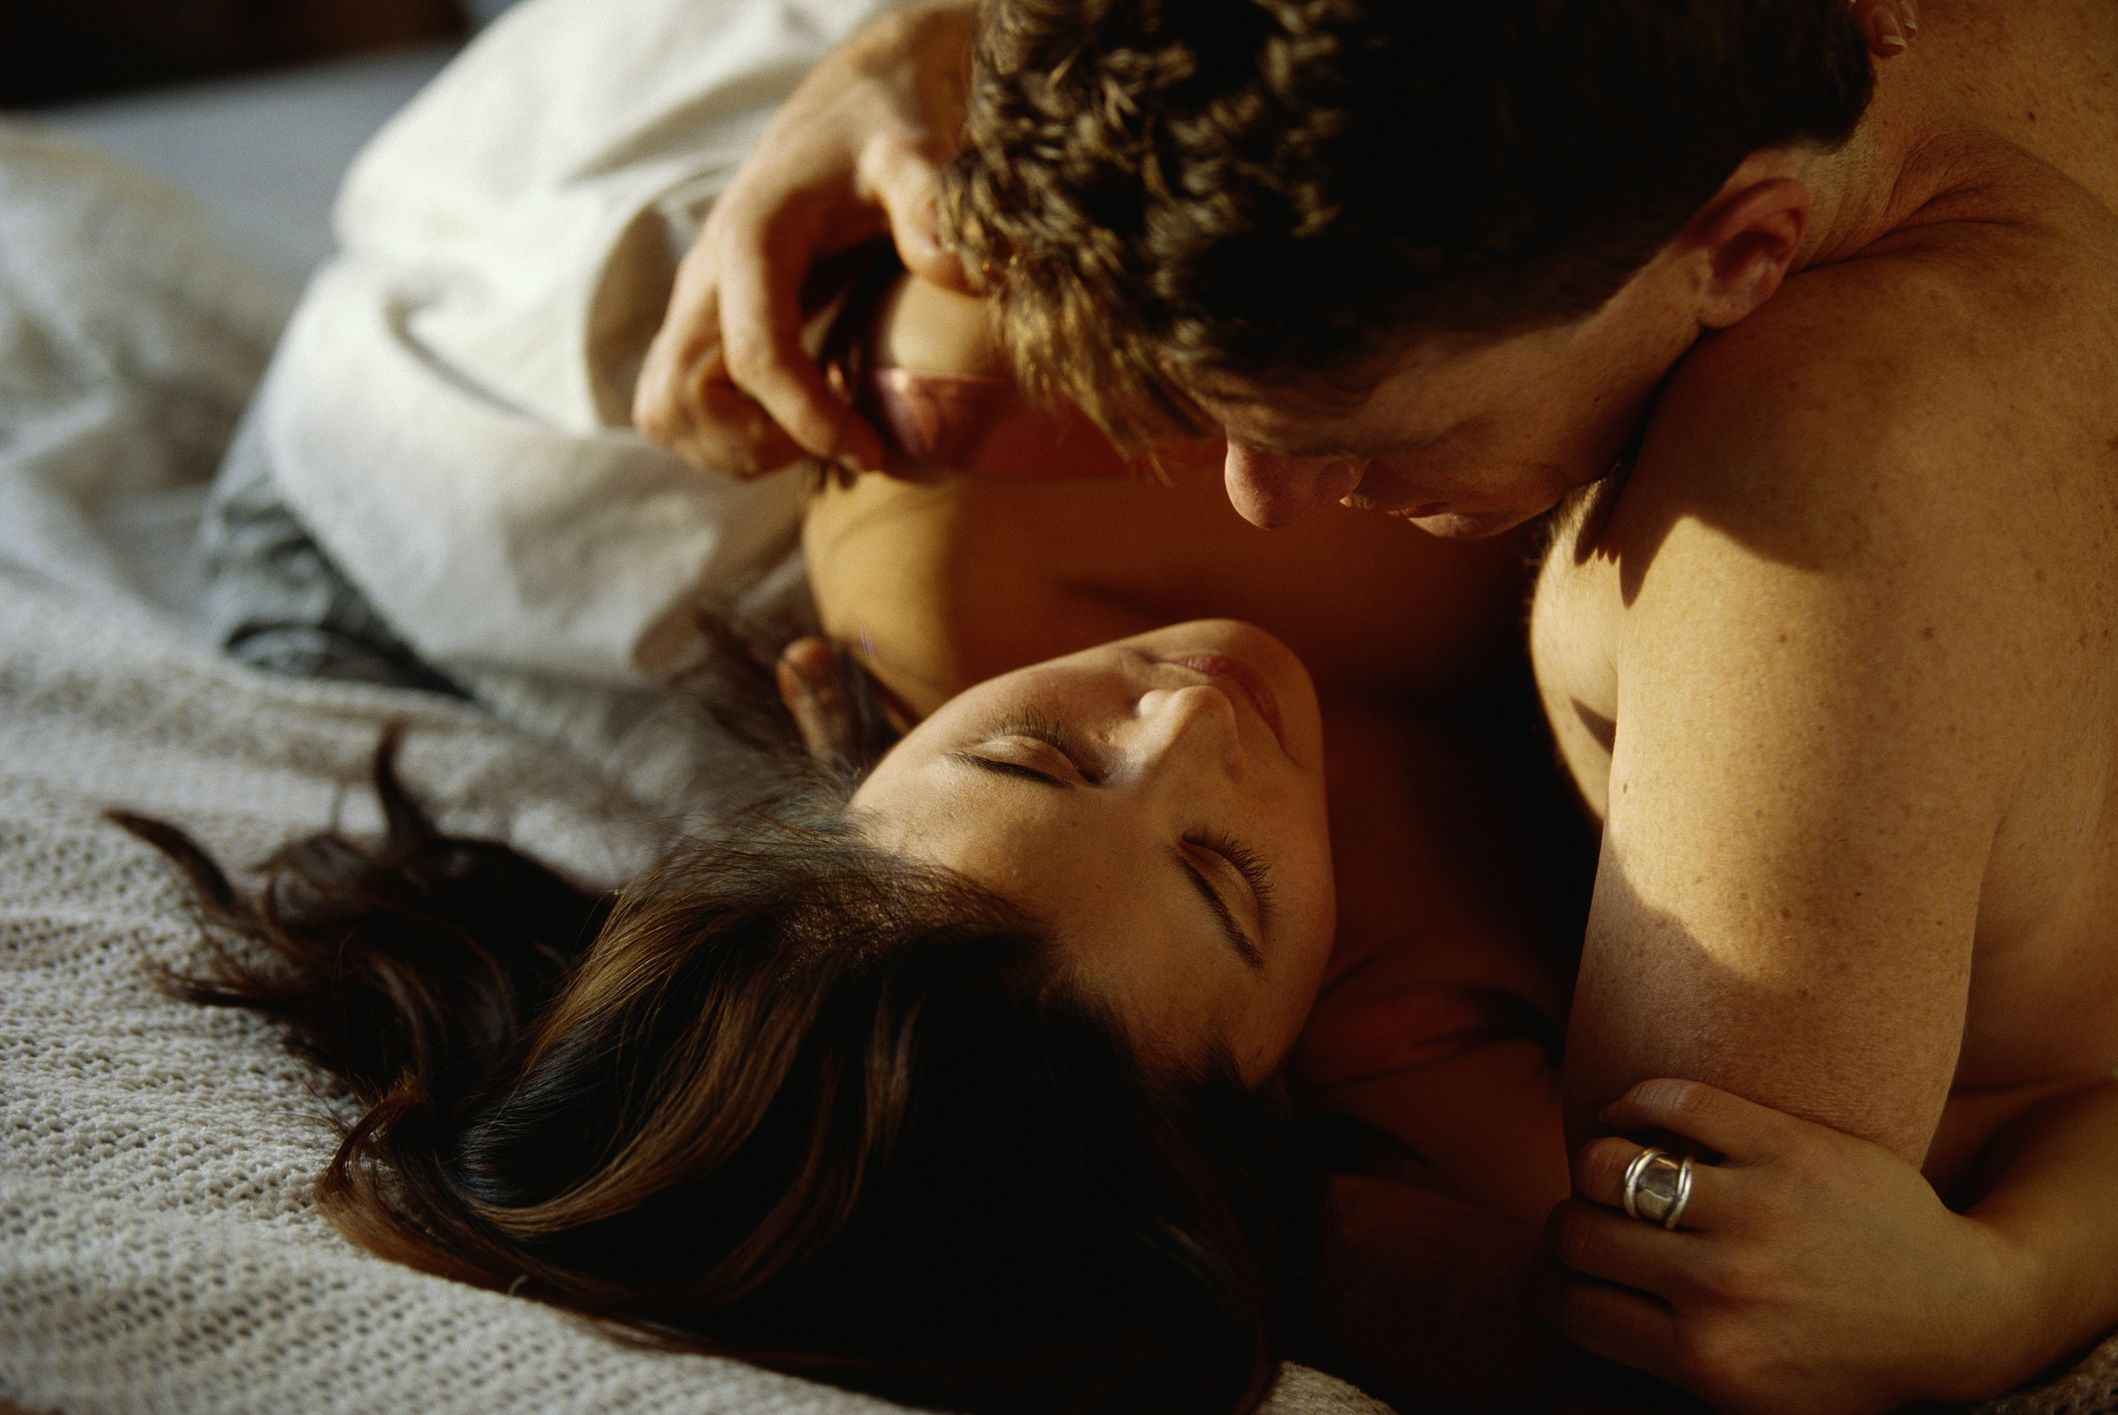 What makes a woman 'amazing' in bed, according to 9 men